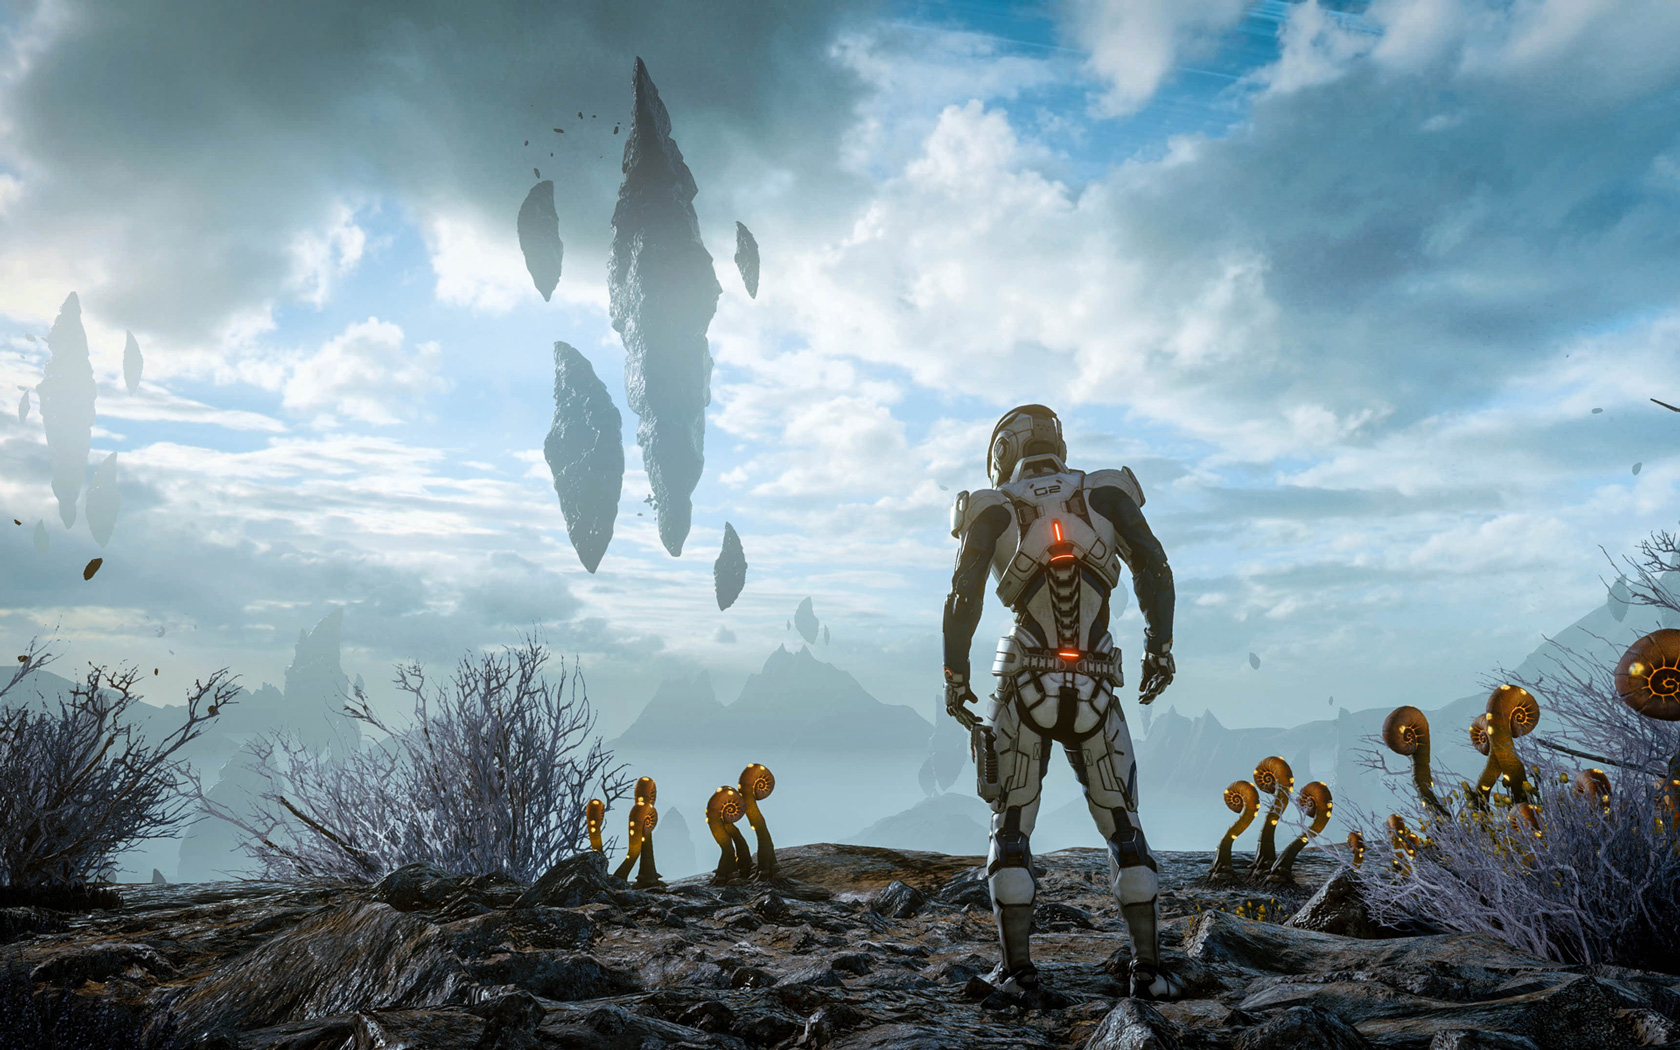 Free Mass Effect: Andromeda Wallpaper in 1680x1050